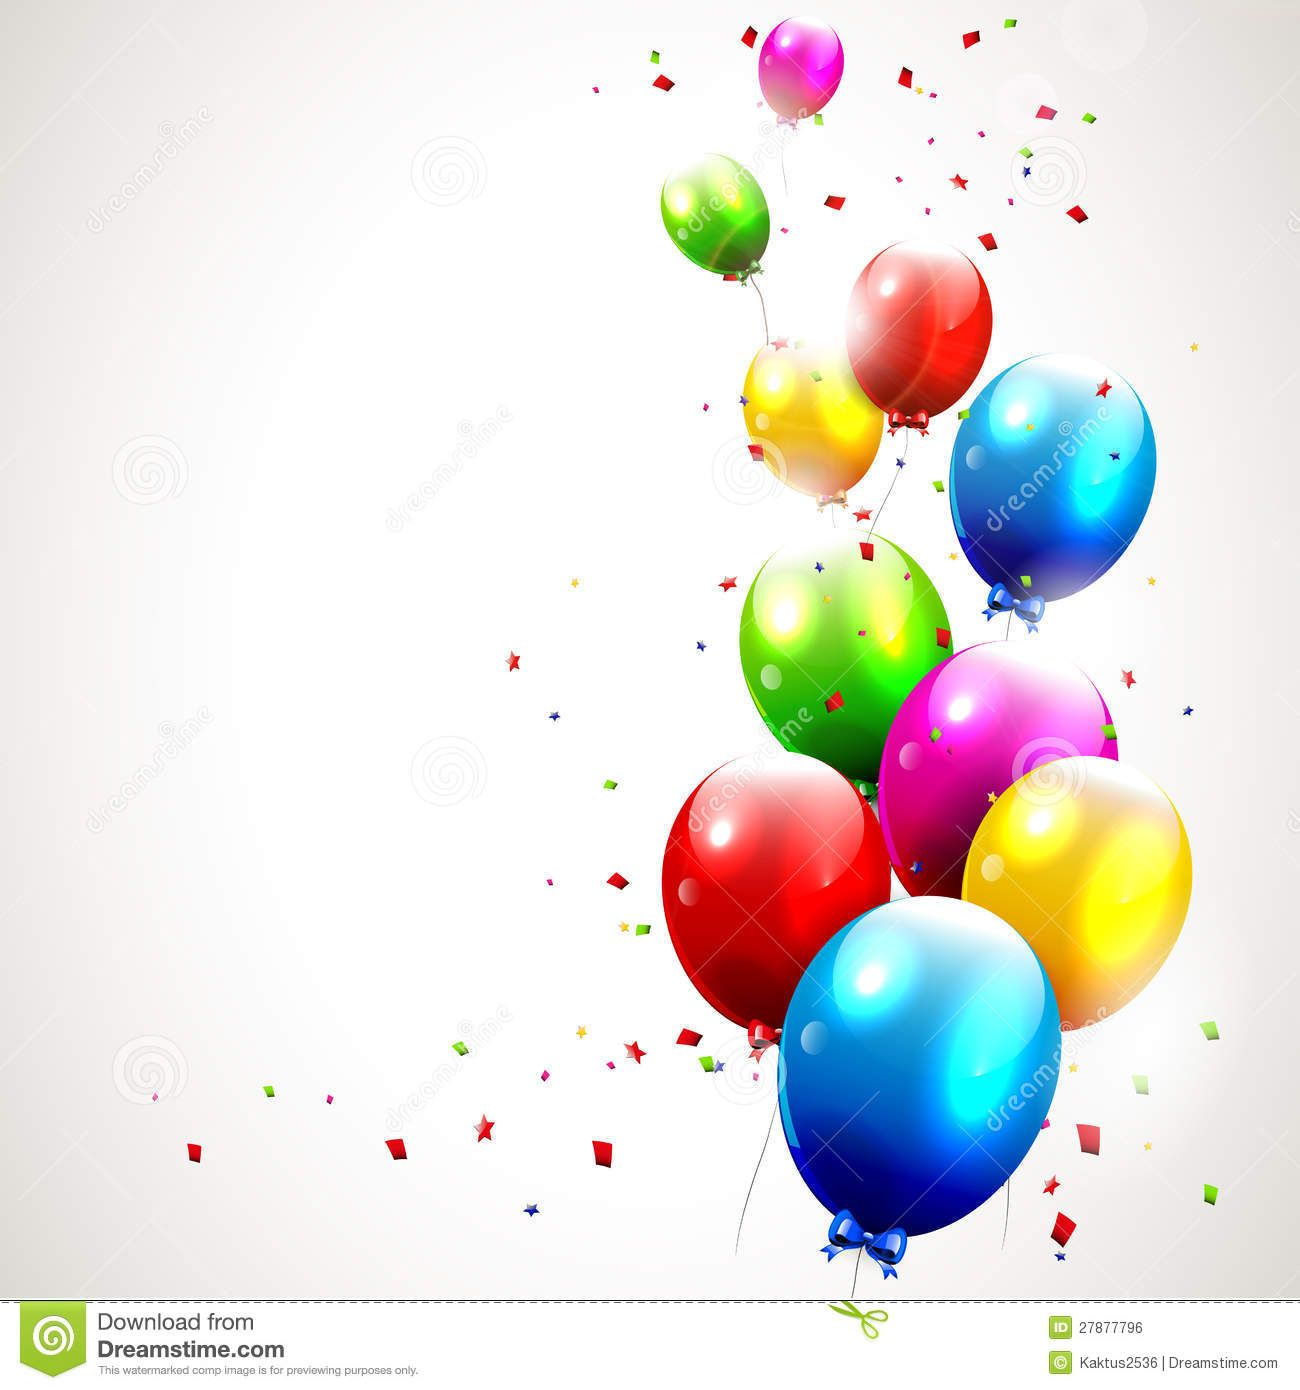 Happy Birthday Backgrounds Pictures Wallpaper